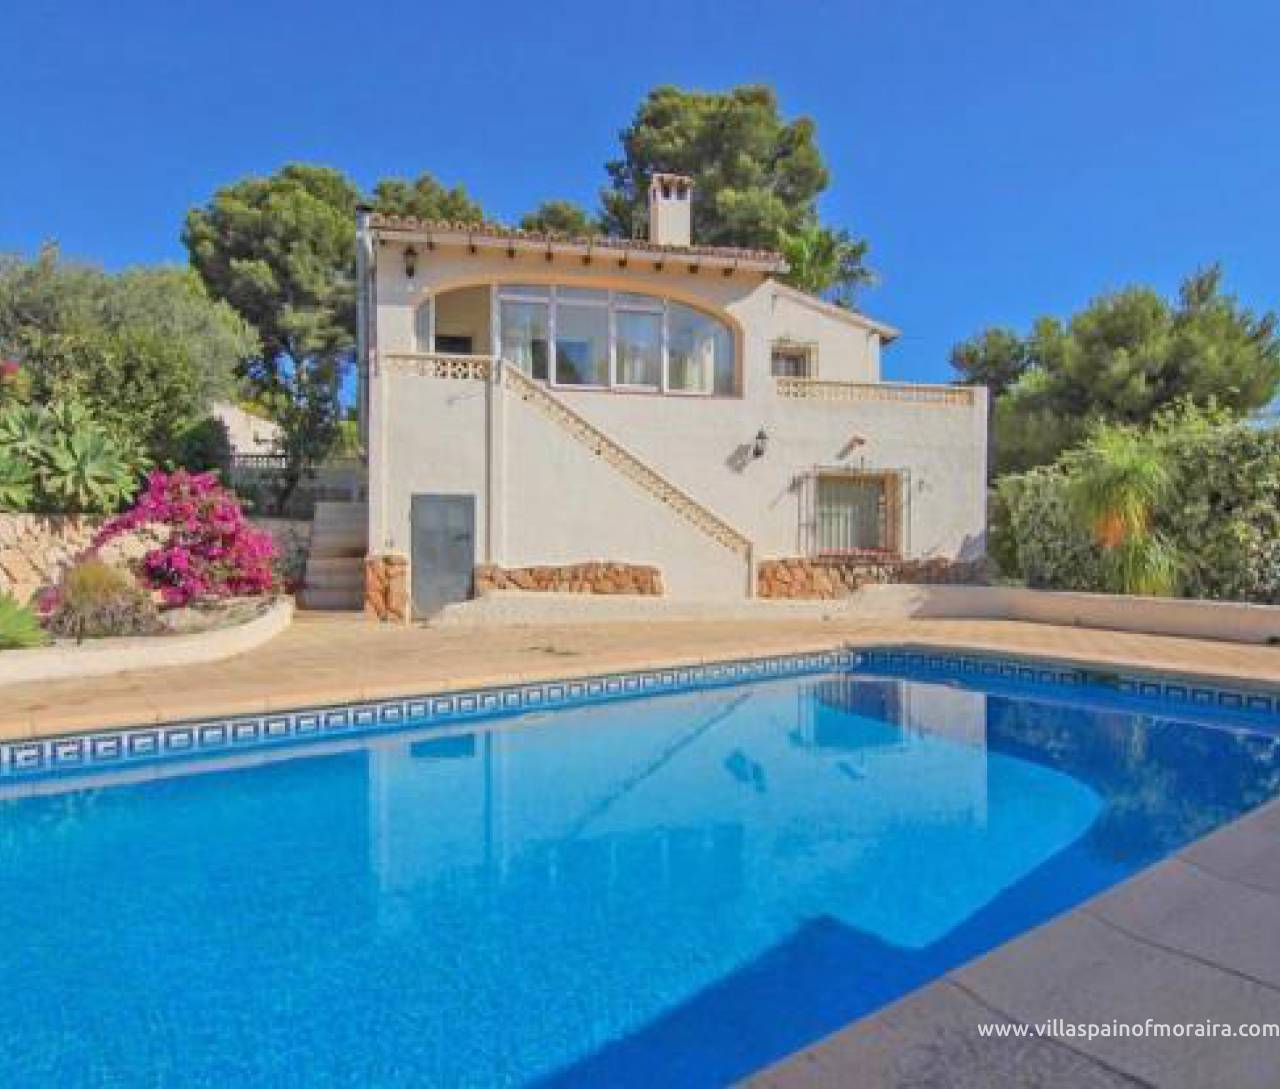 Tabaira property for sale Moraira